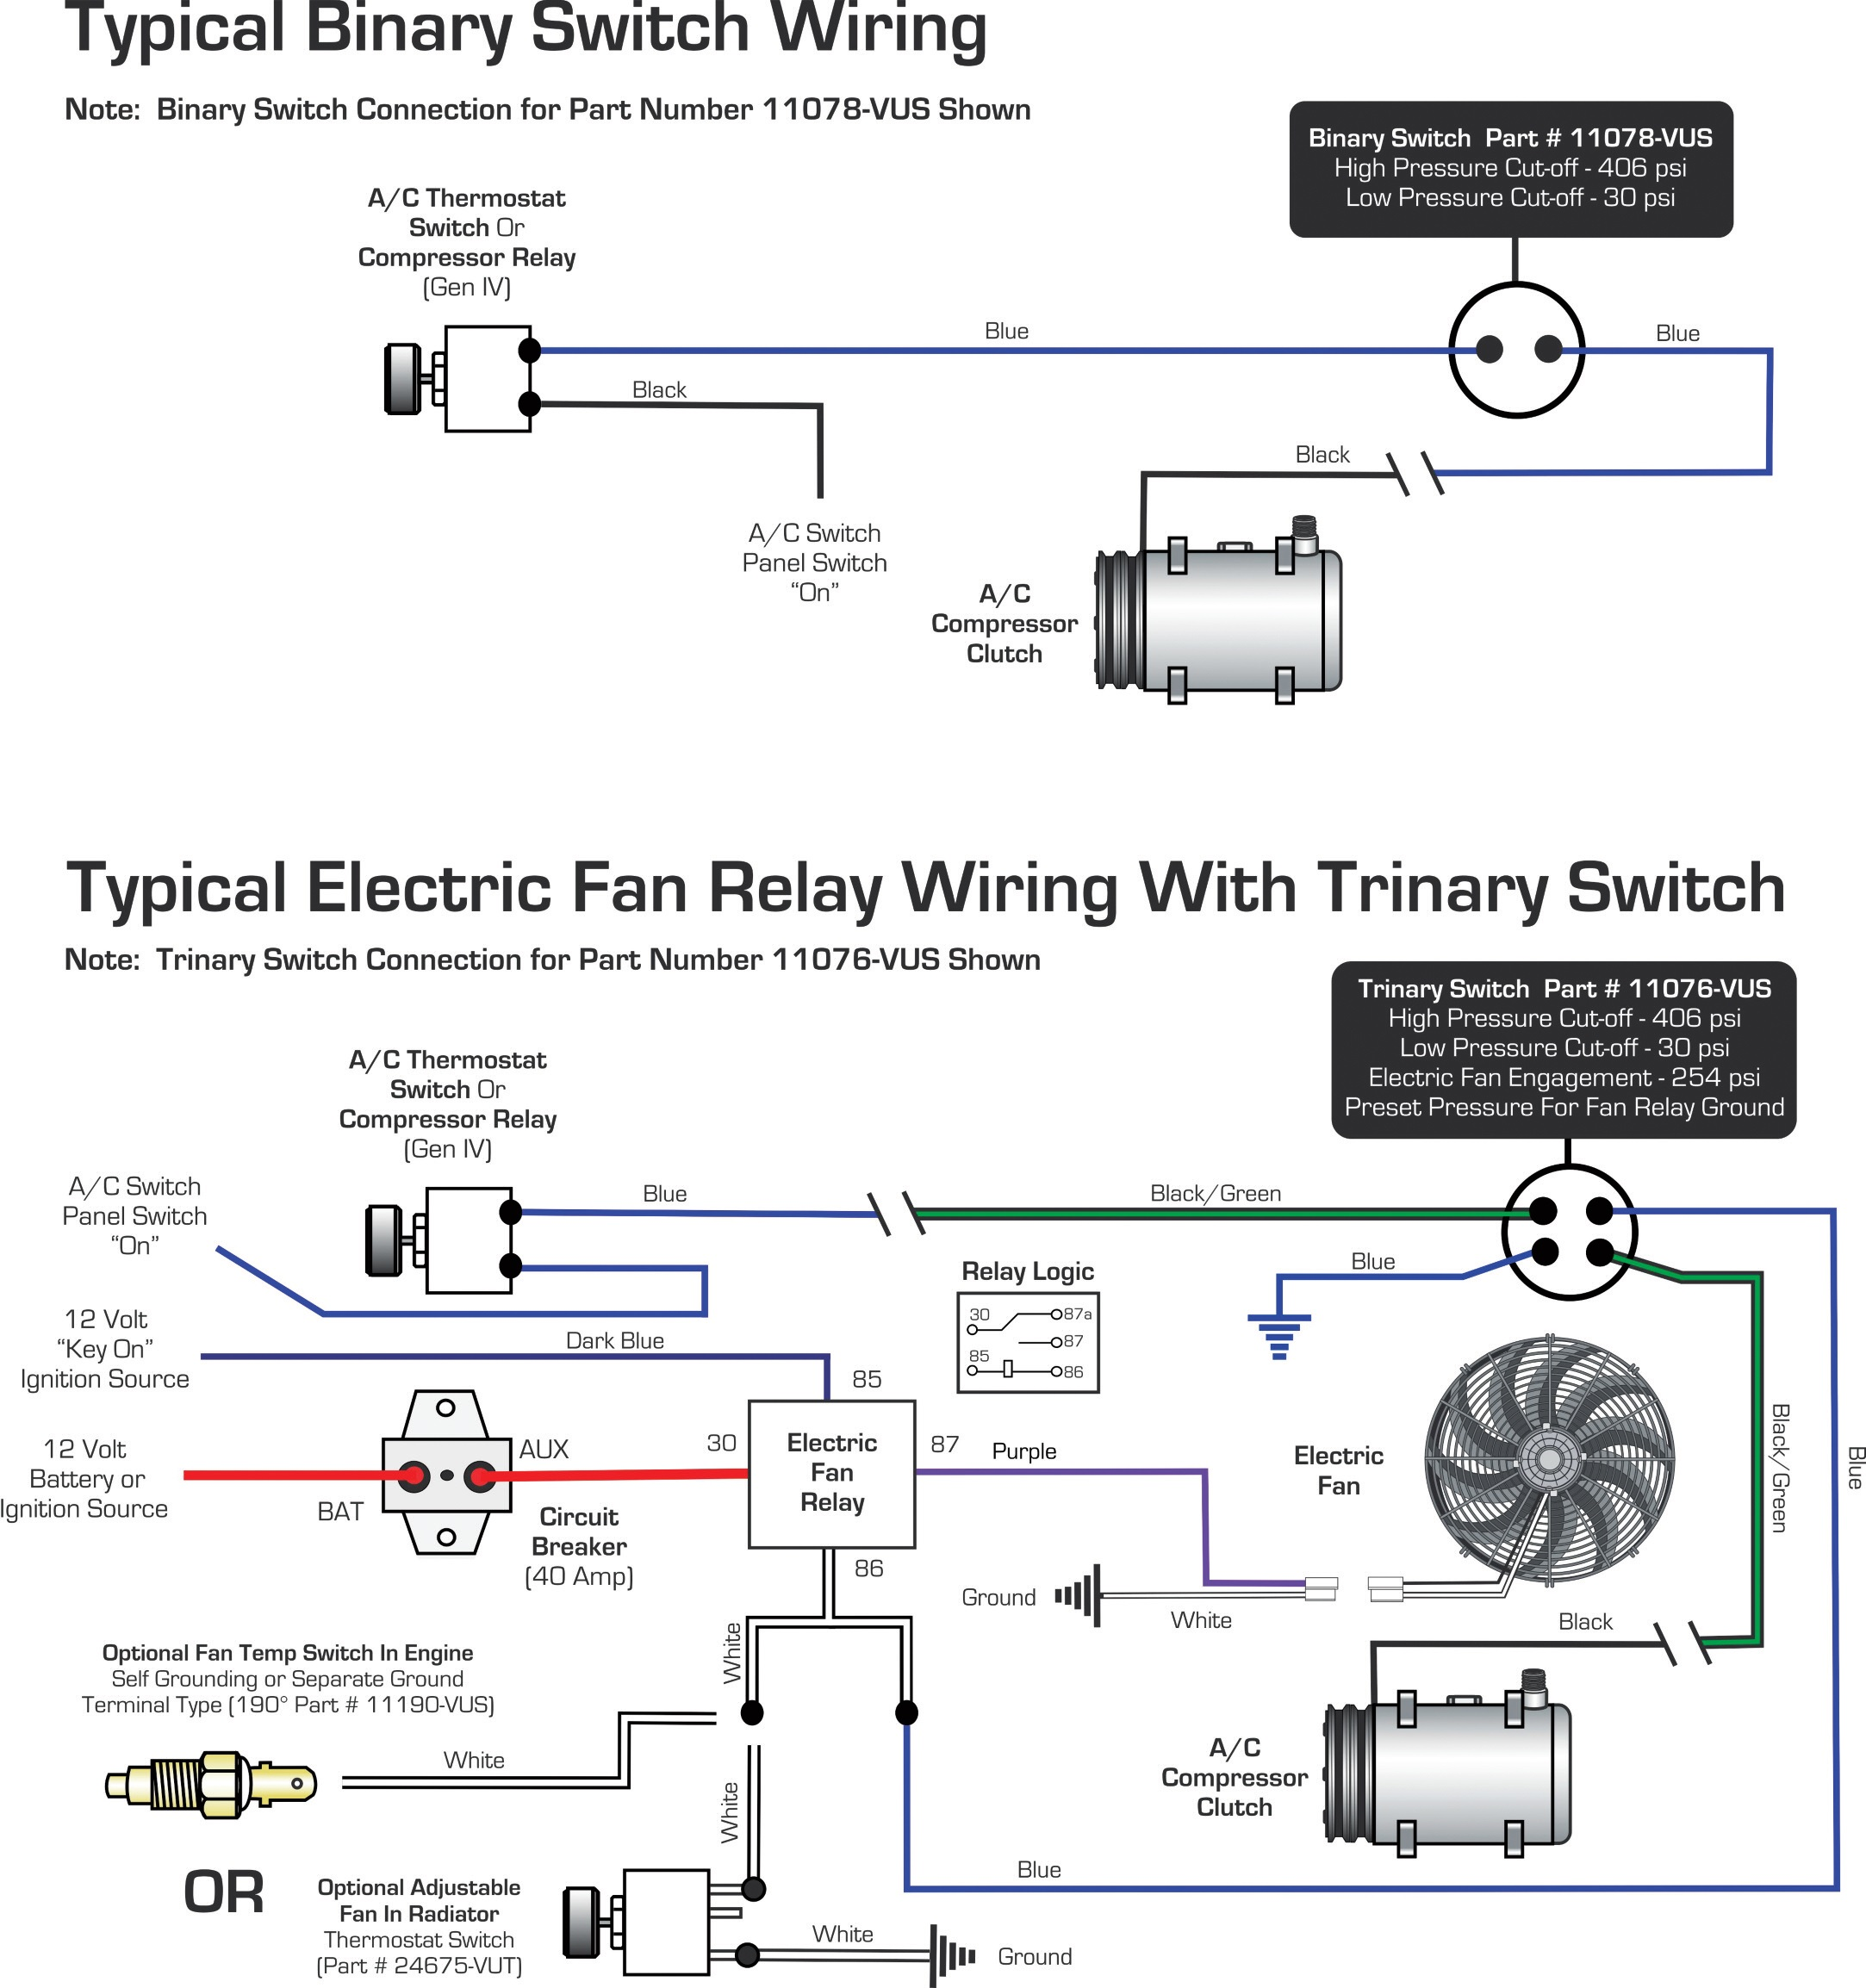 Vintage Air » Blog Archive WIRING DIAGRAMS Binary Switch / Trinary Switch - Vintage  AirVintage Air